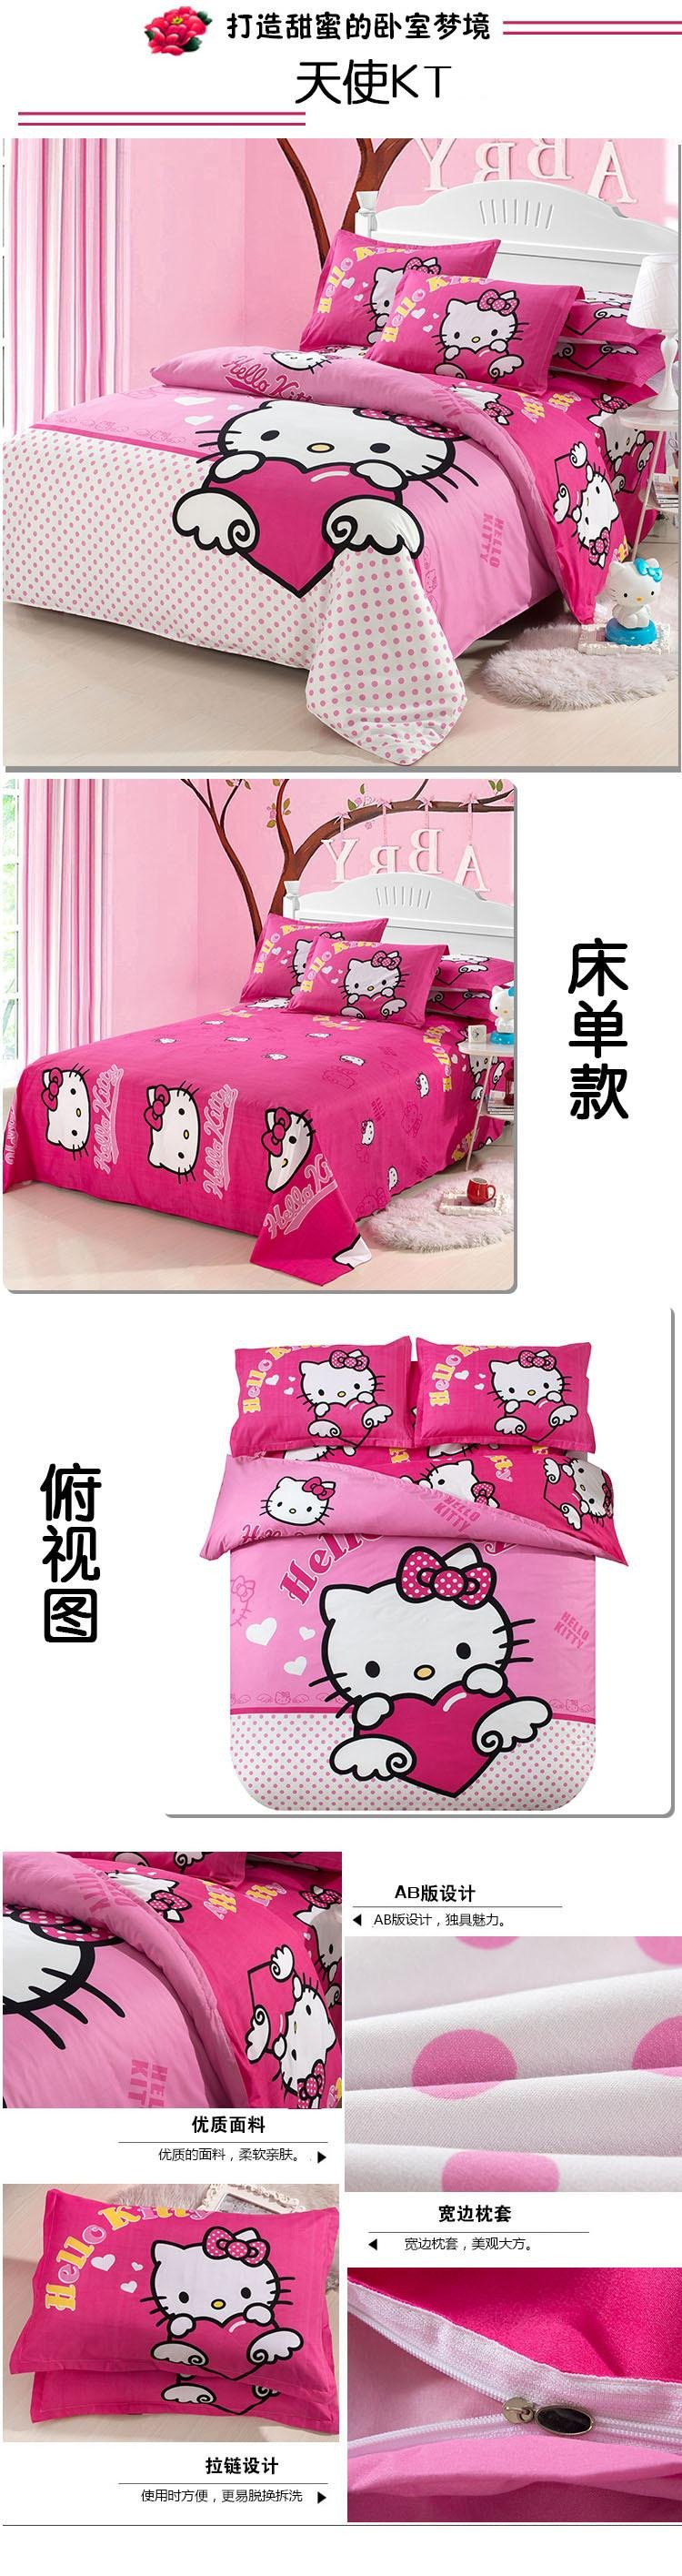 Hello Kitty Bedroom Set Unique Cotton Hello Kitty Home Textile Reactive Print Bedding Sets Cartoon Bed Sheet Duvet Cover Set Bedding Set Pink Duvet forters and Bedding From